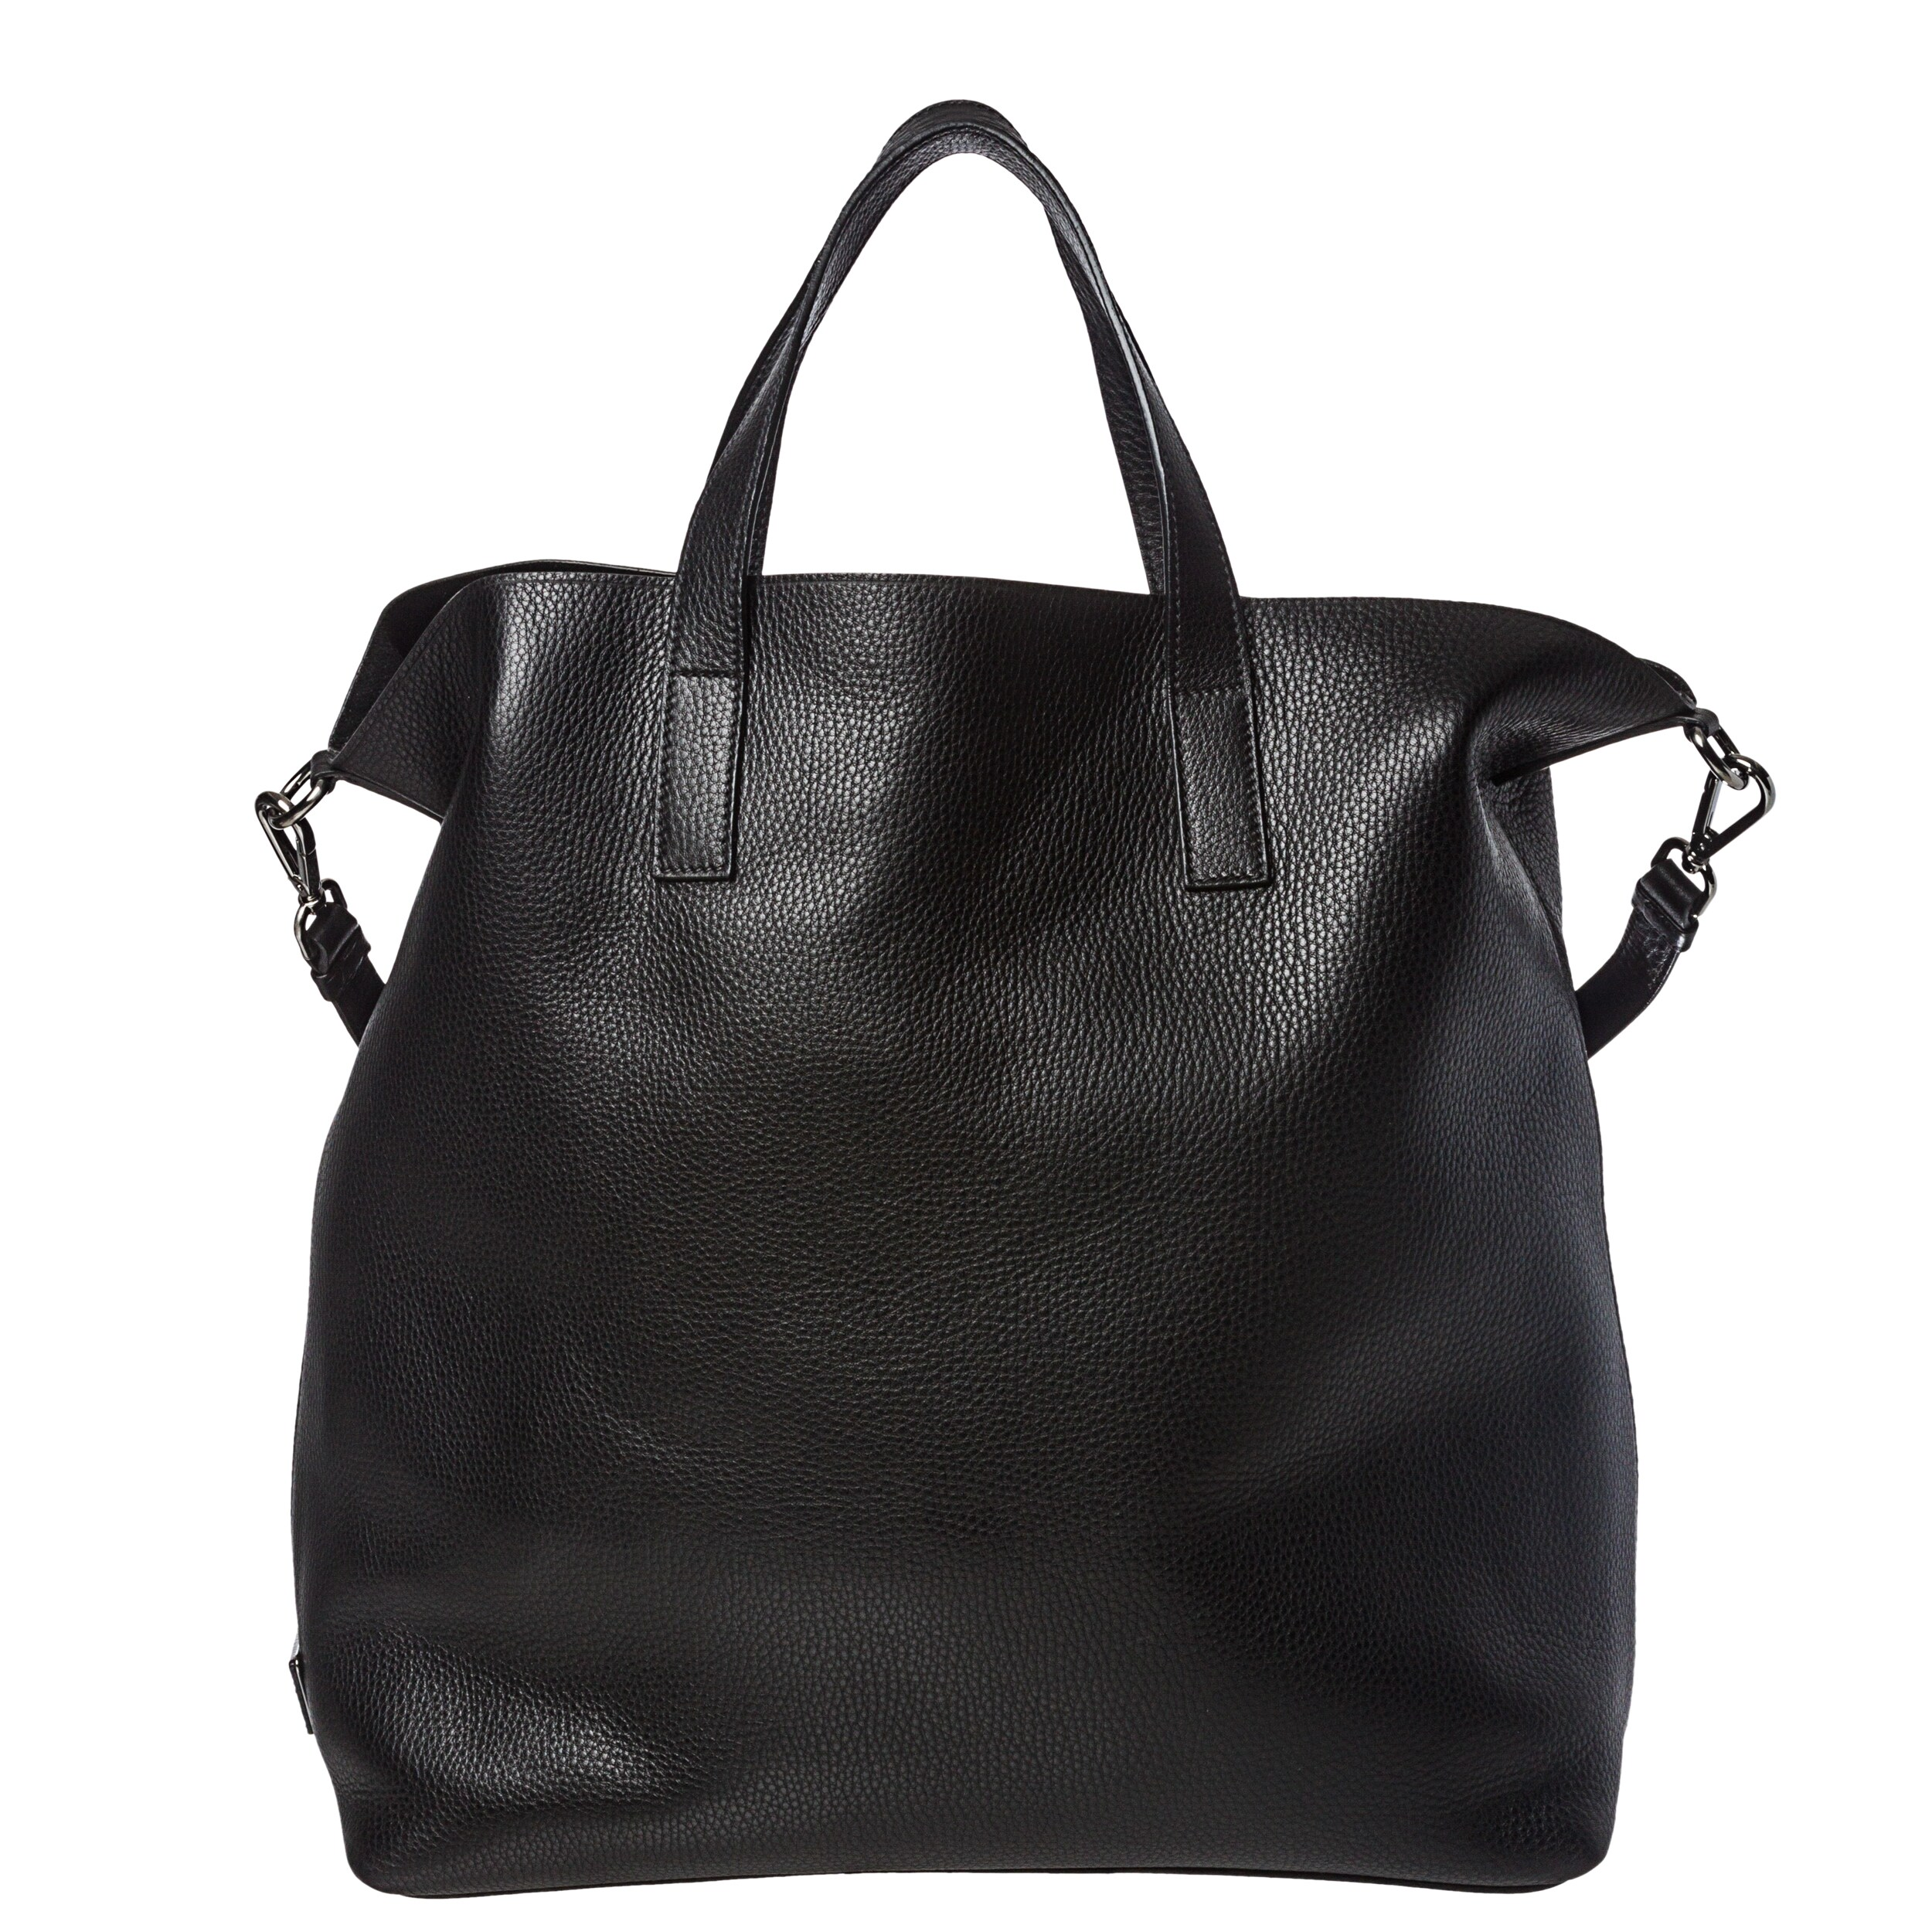 Prada Large Black Leather Tote Bag - 14364187 - Overstock.com ...